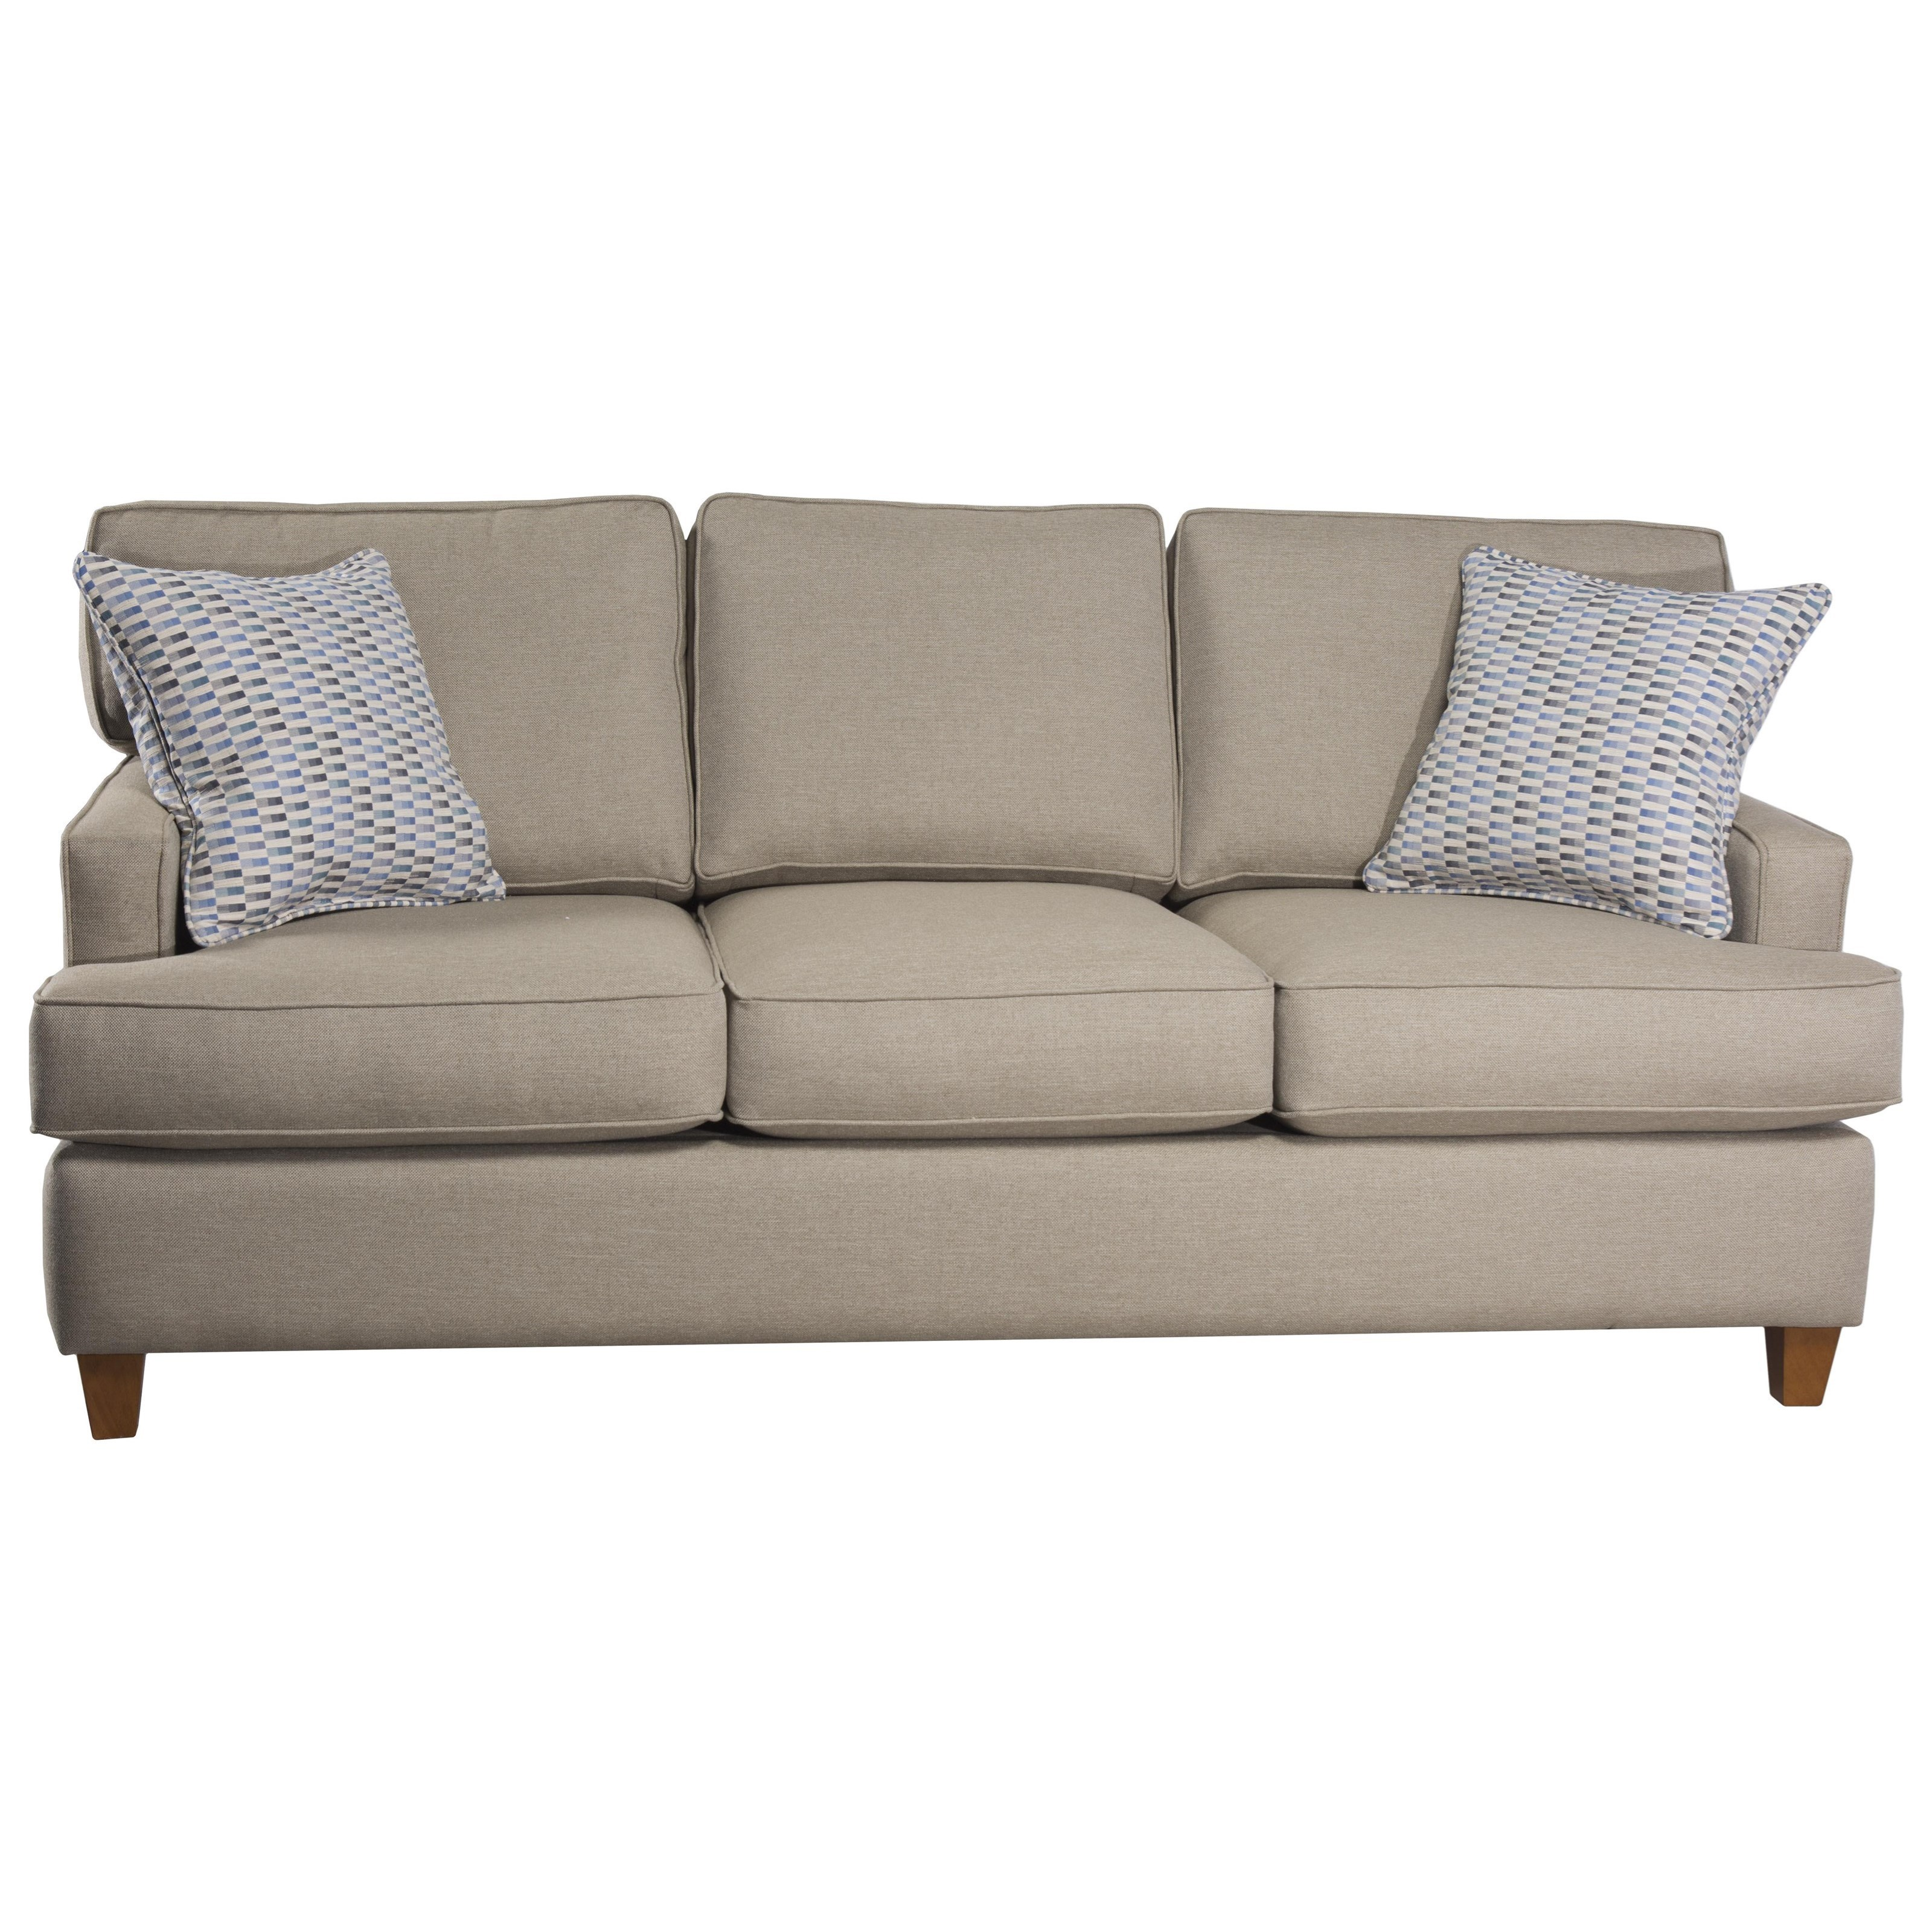 162 Queen Sleeper Sofa by Capris Furniture at Esprit Decor Home Furnishings